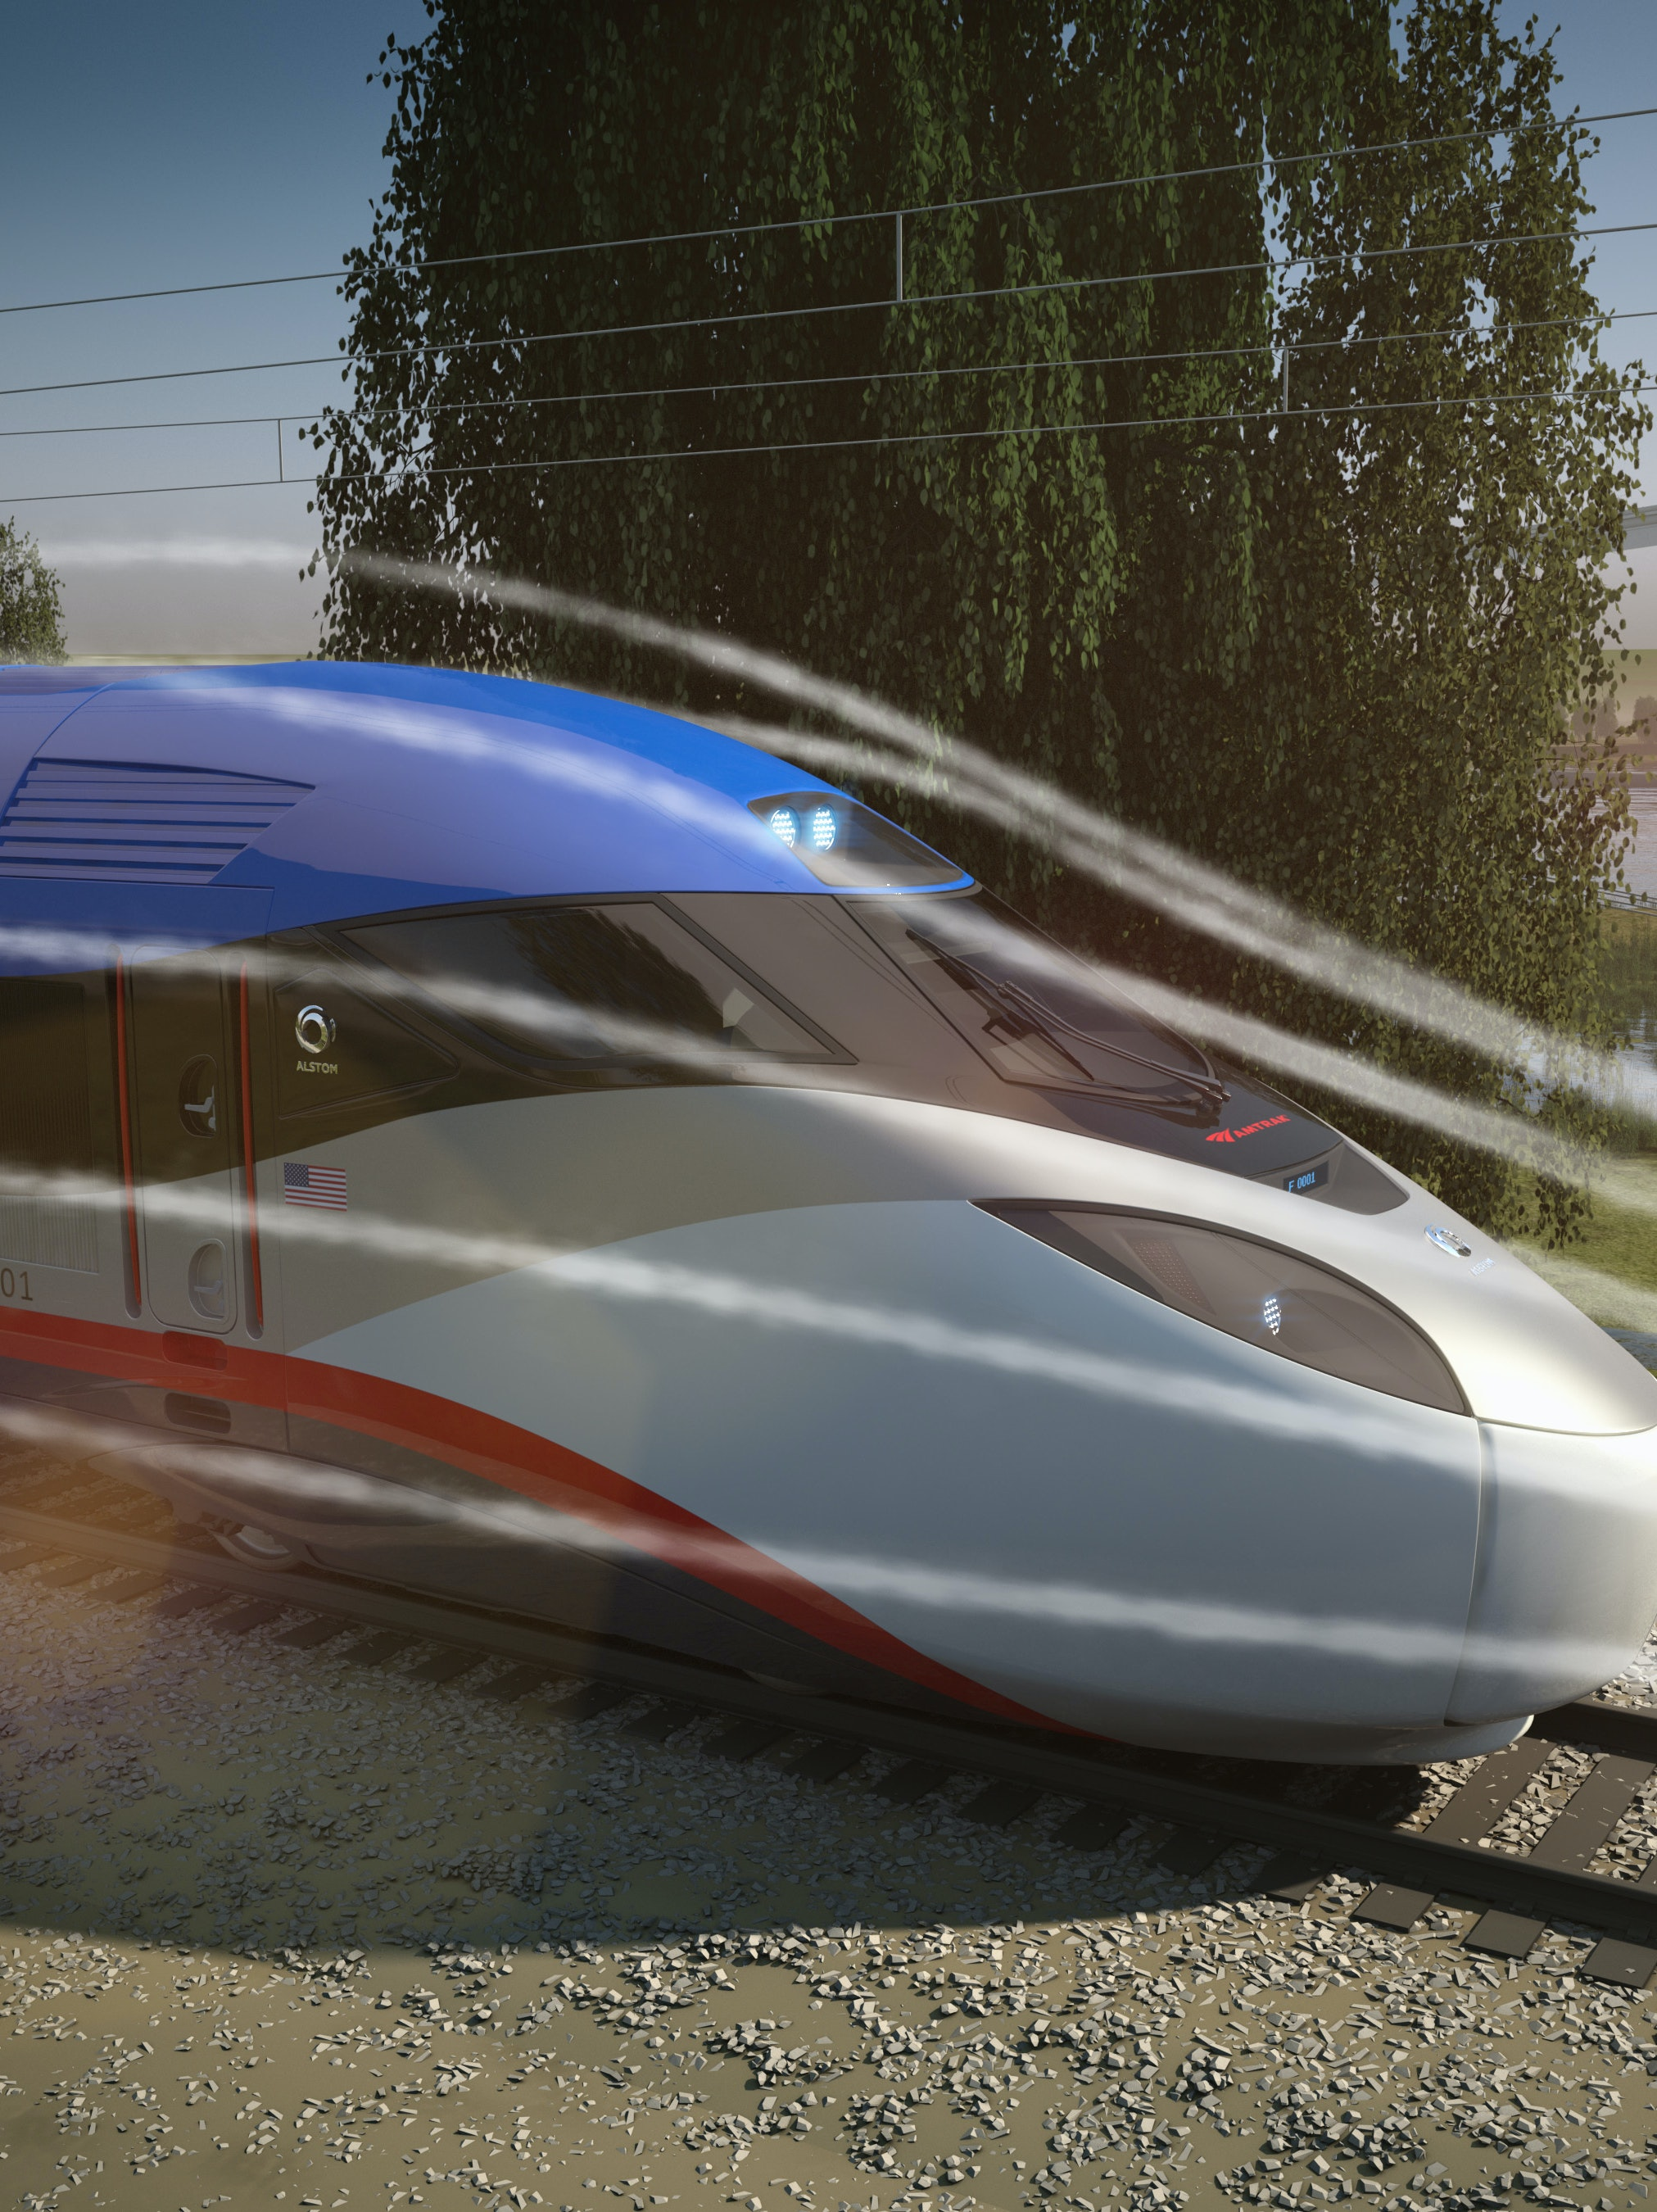 New Amtrak trains will travel at up to